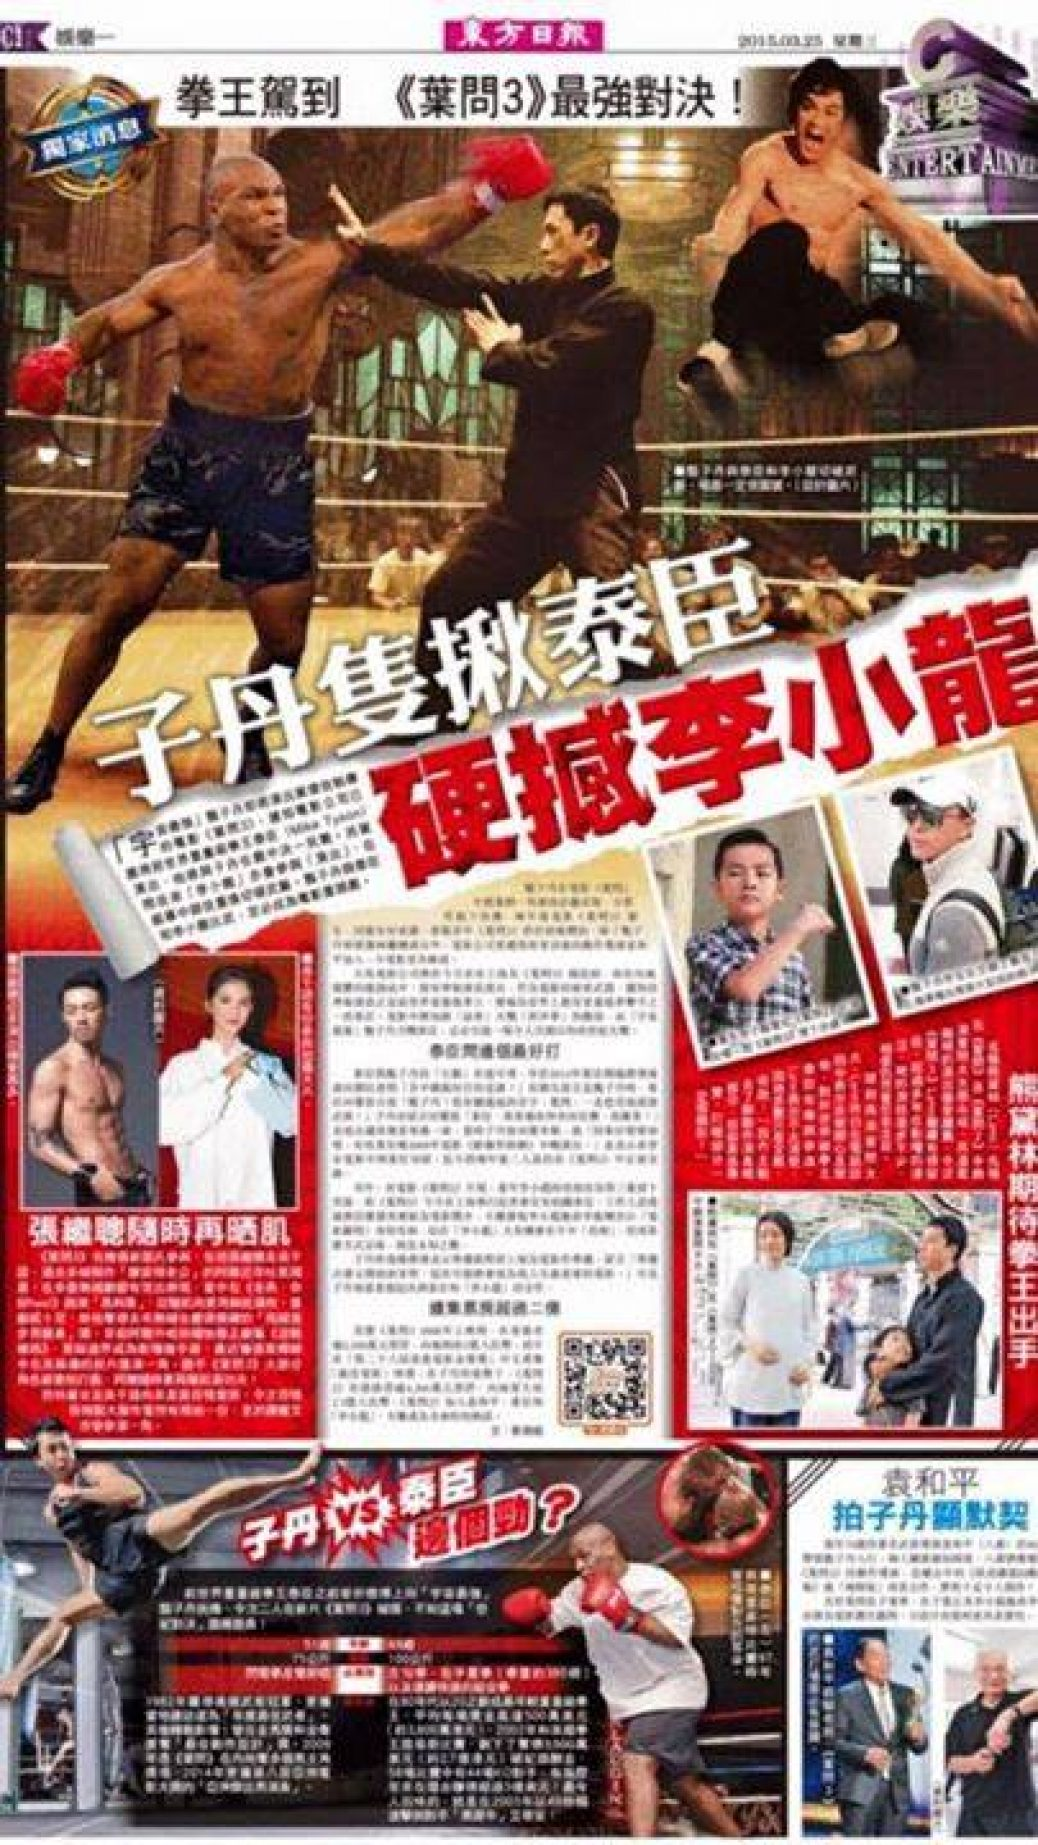 Ip man, Mike Tyson e Bruce Lee Juntos?  - ip man wing chun o grande mestre sifu monnerat 1038x1845 - Home News Magazine